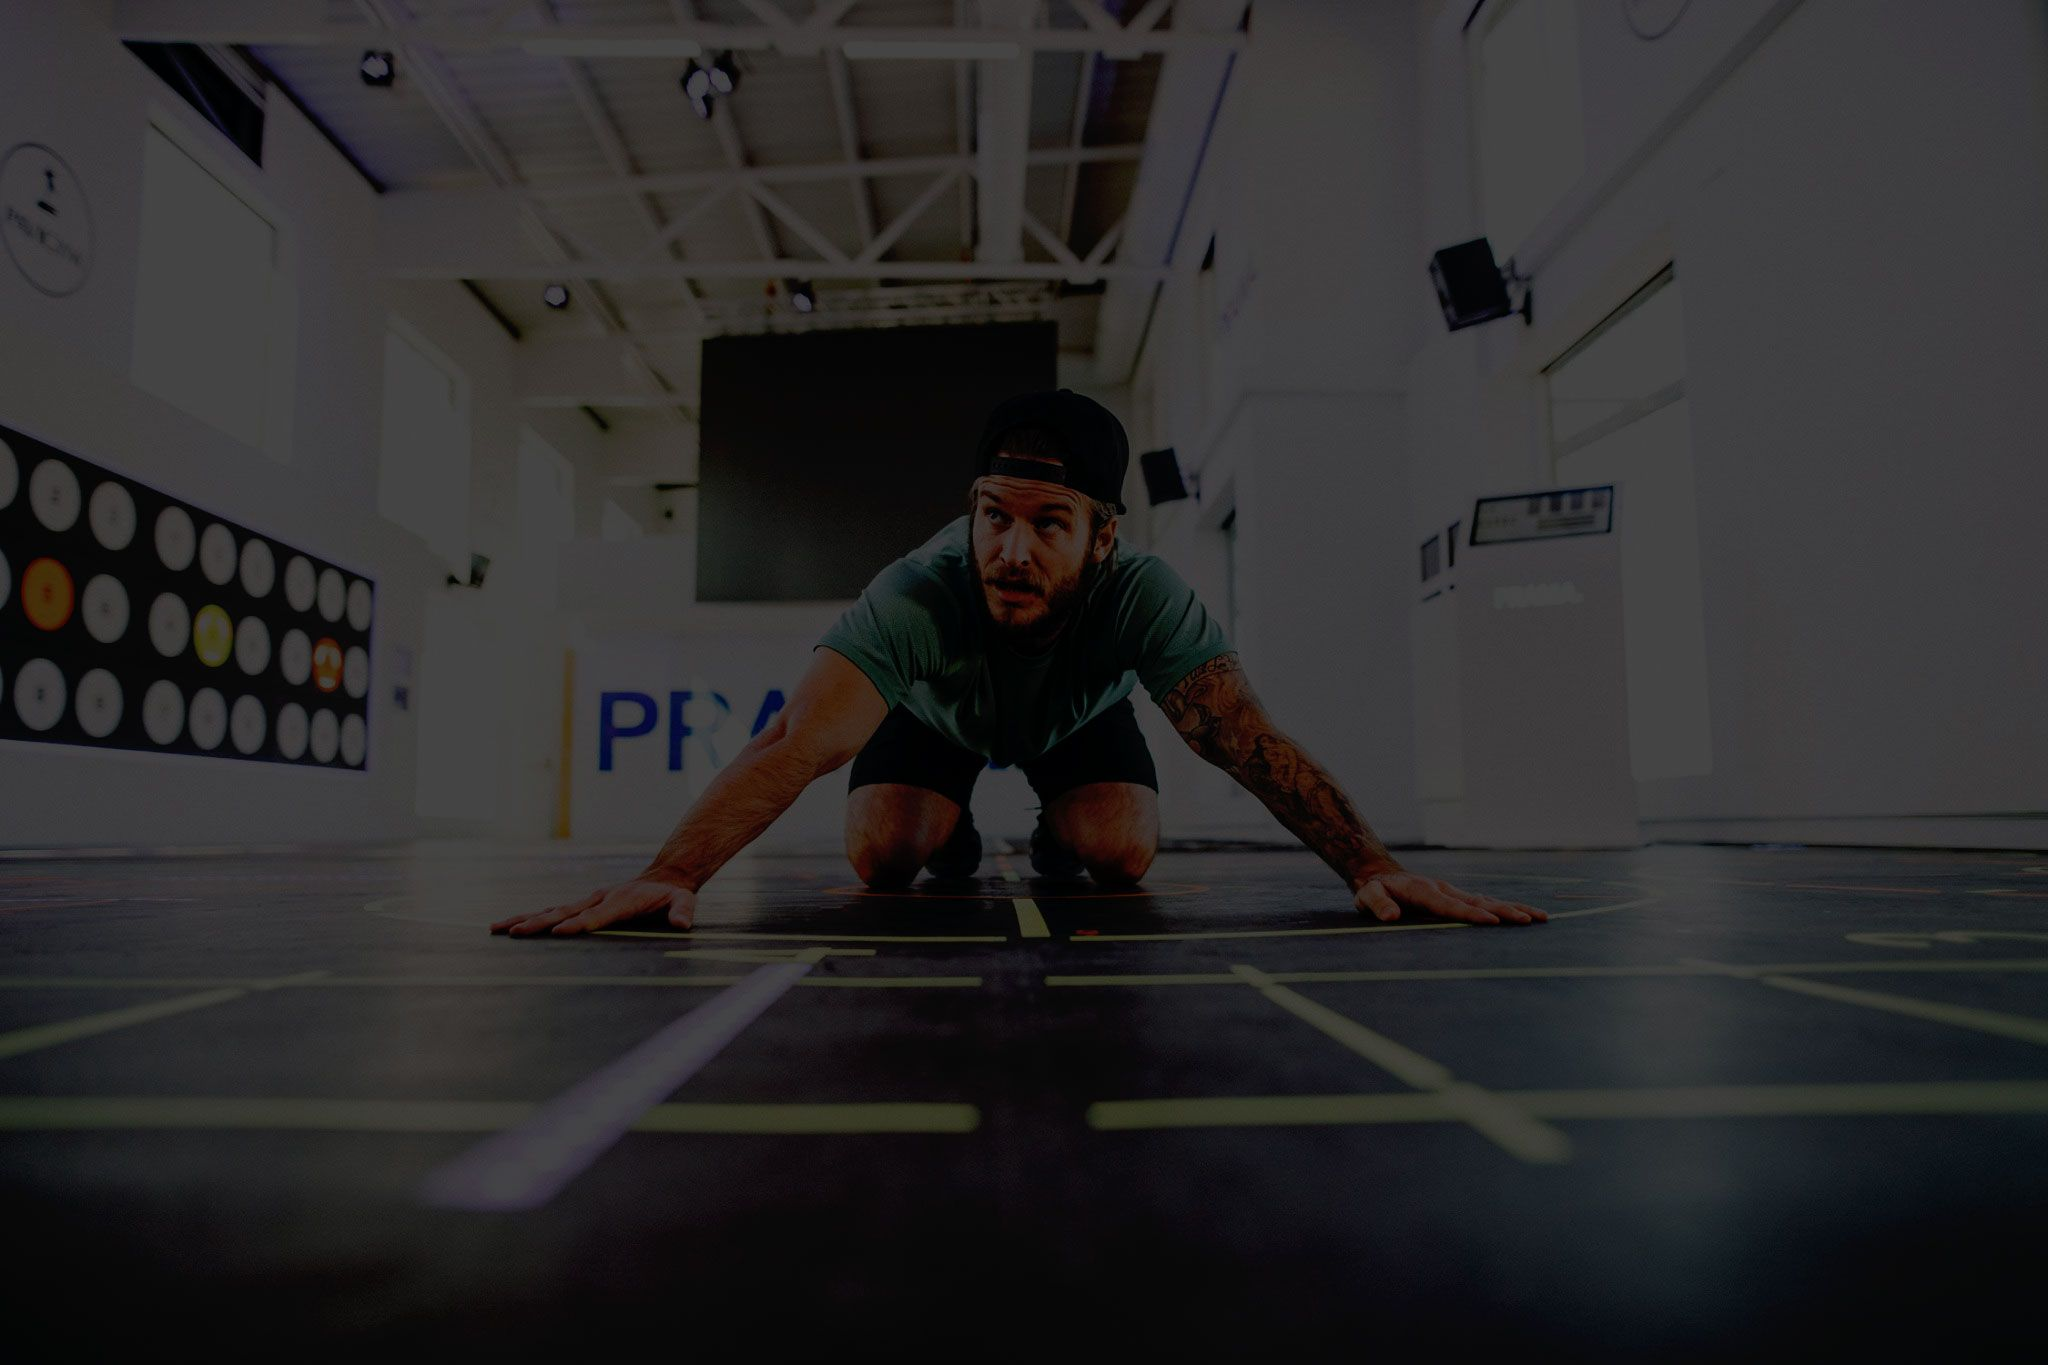 Gym flooring: How to save money in the long term